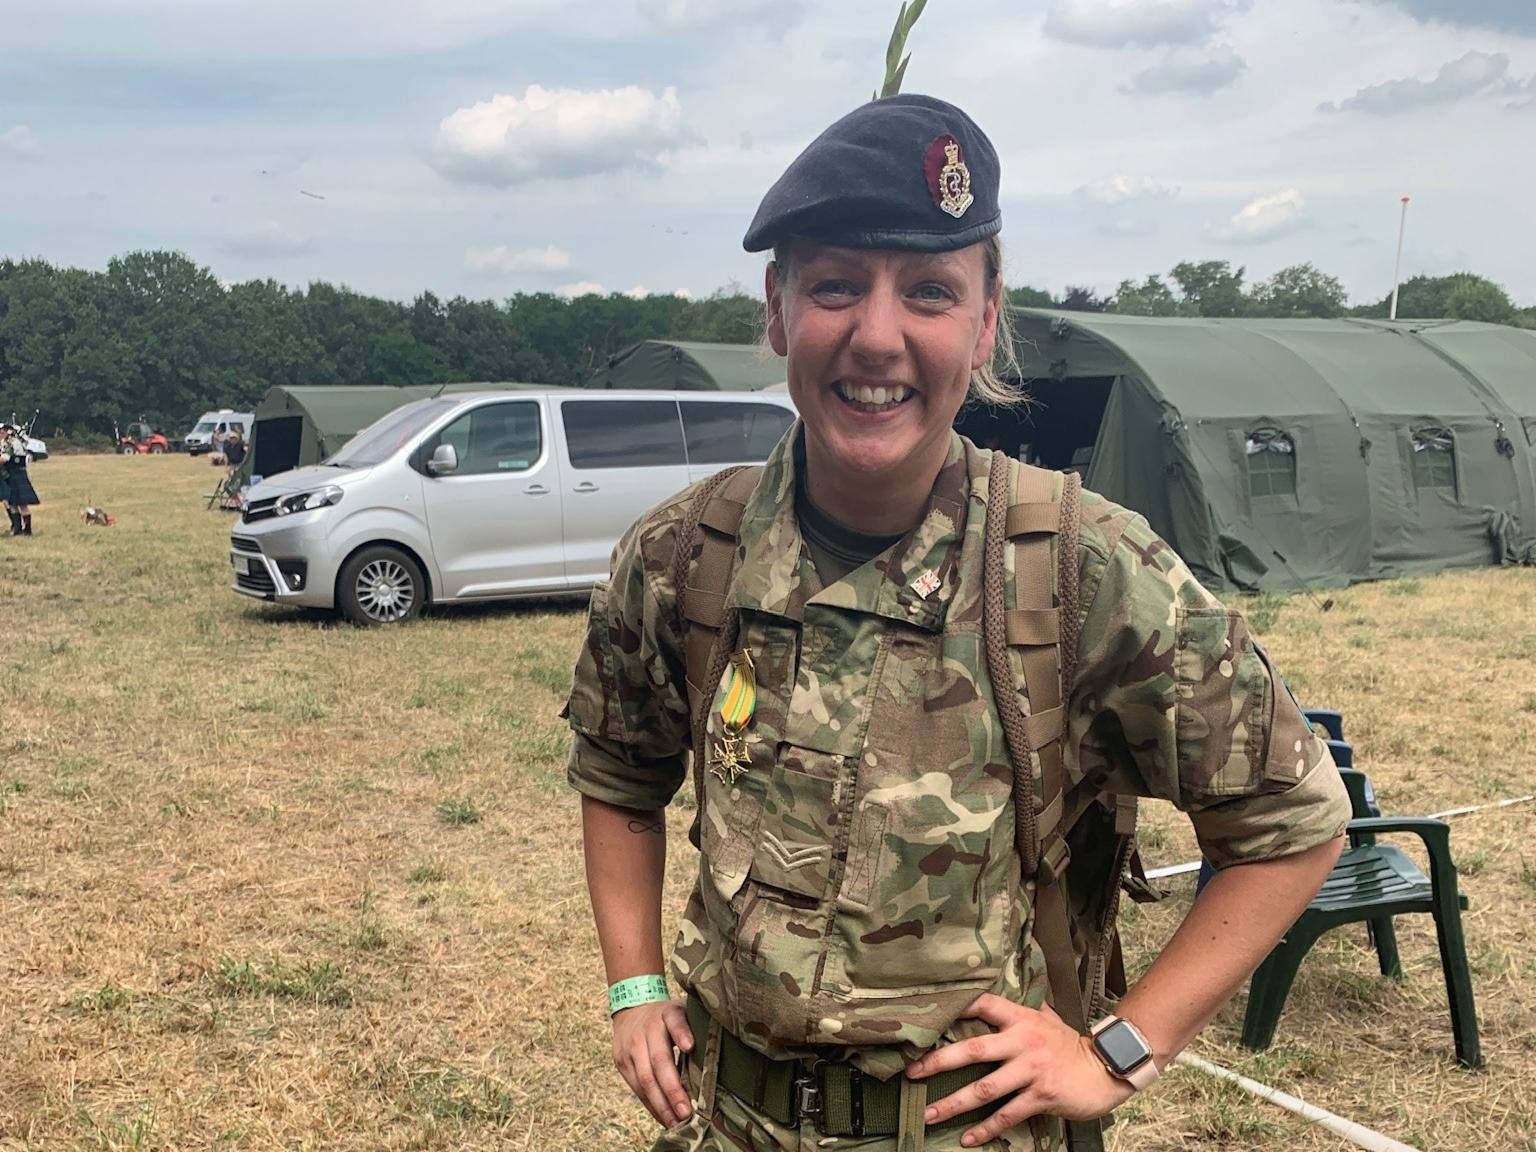 Army Reservist Corporal Louise Fowler in her uniform